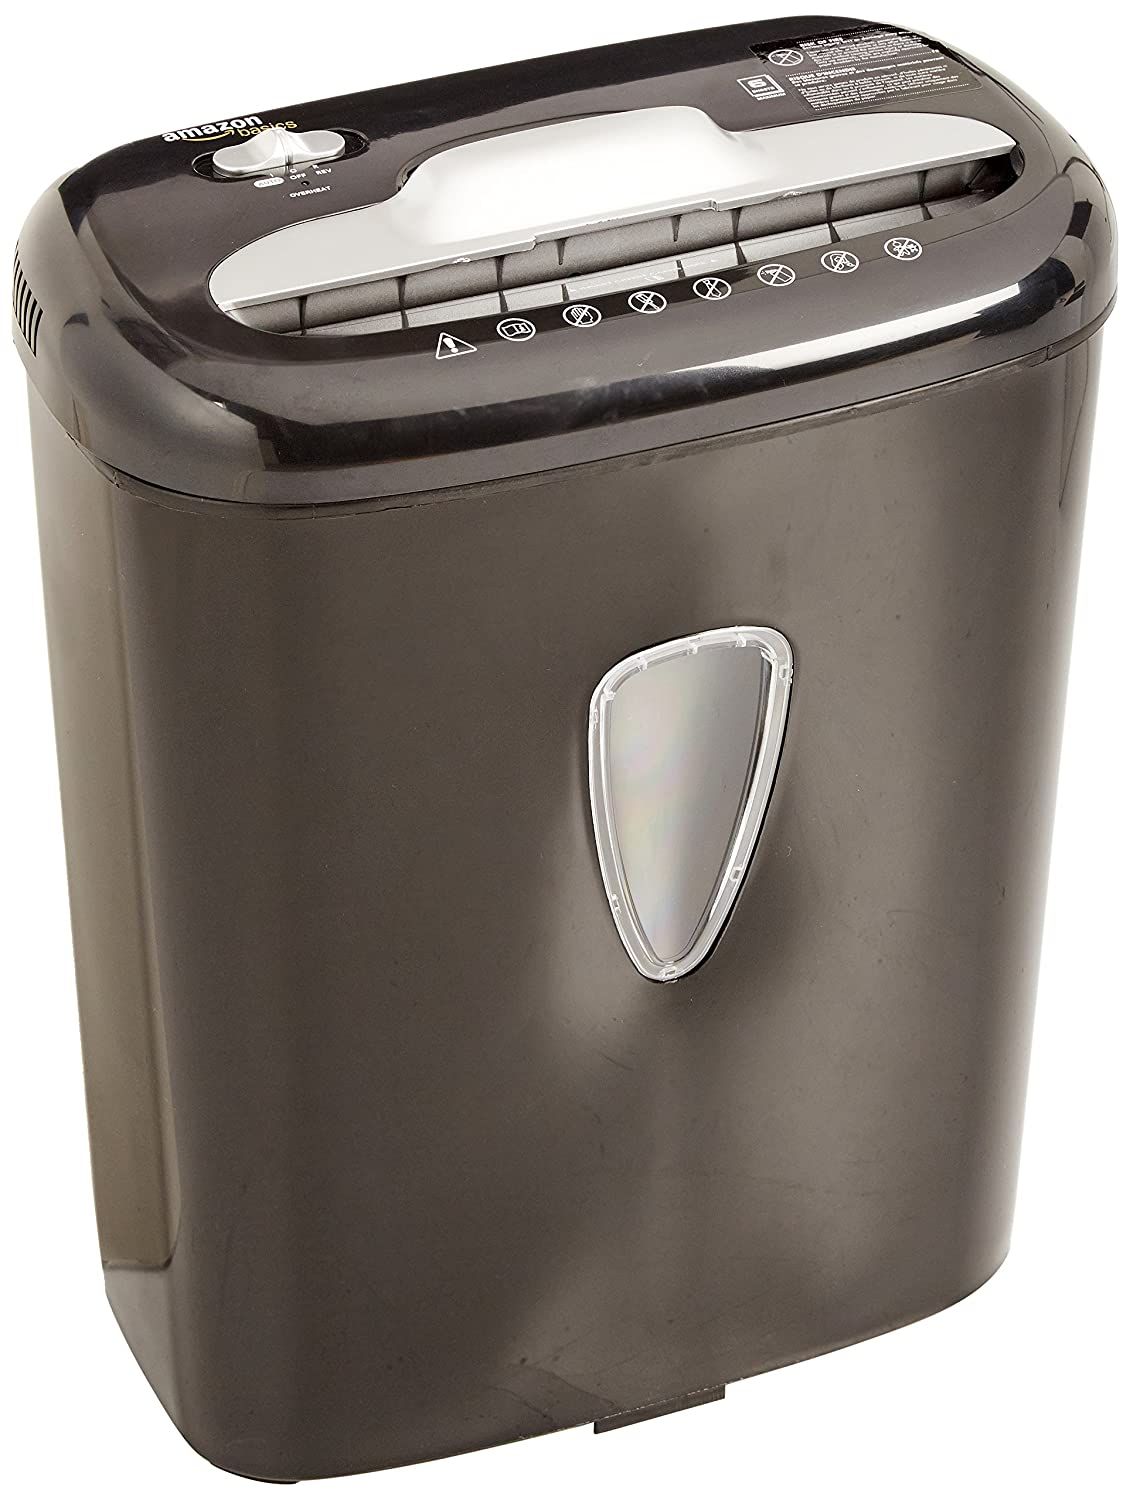 AmazonBasics 6-Sheet High-Security Micro-Cut Paper and Credit Card Shredder AU600MA-Parent